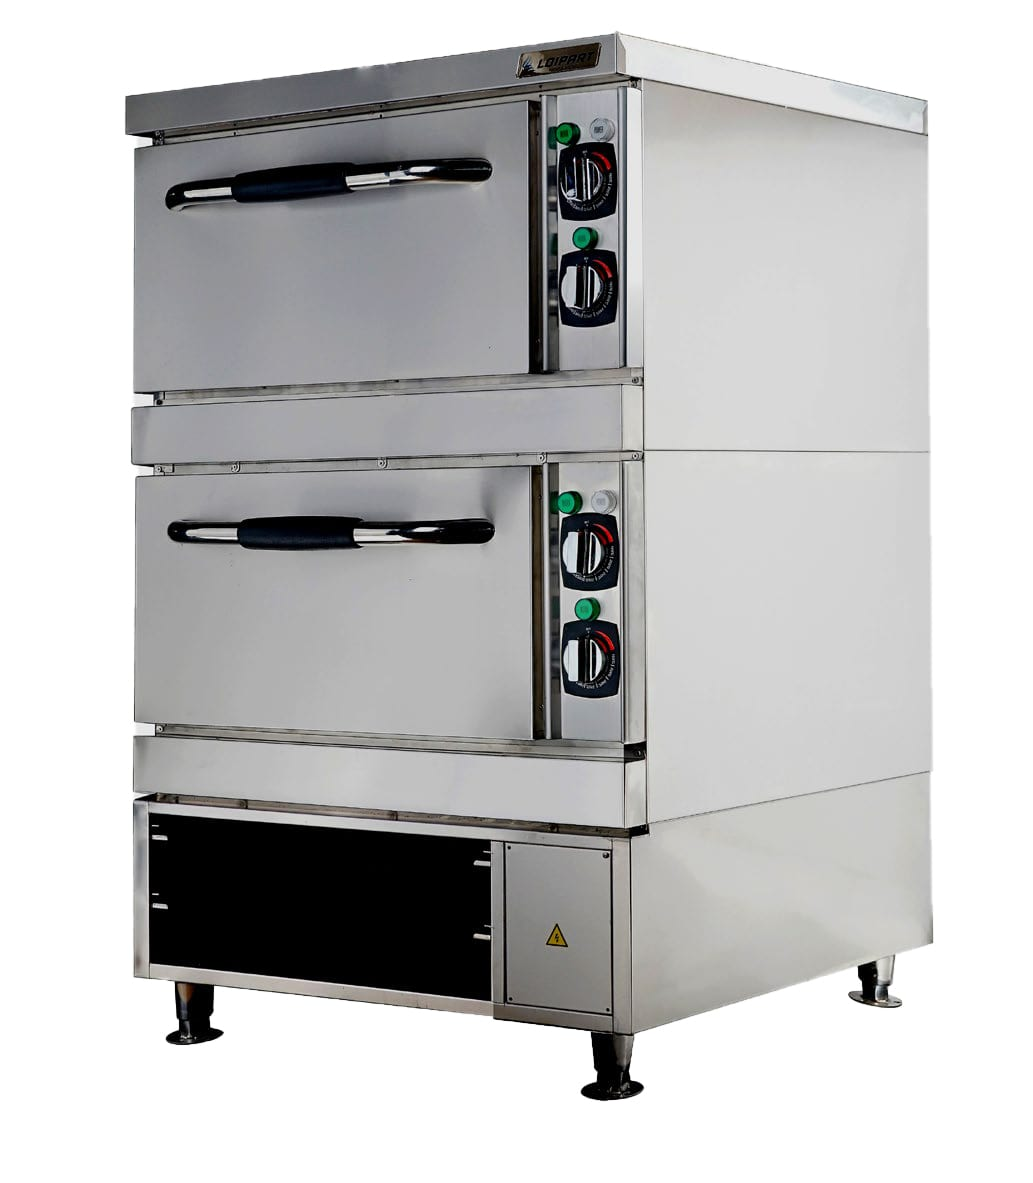 Baking and Roasting Oven, 2 Decks and Open Cabinet Image